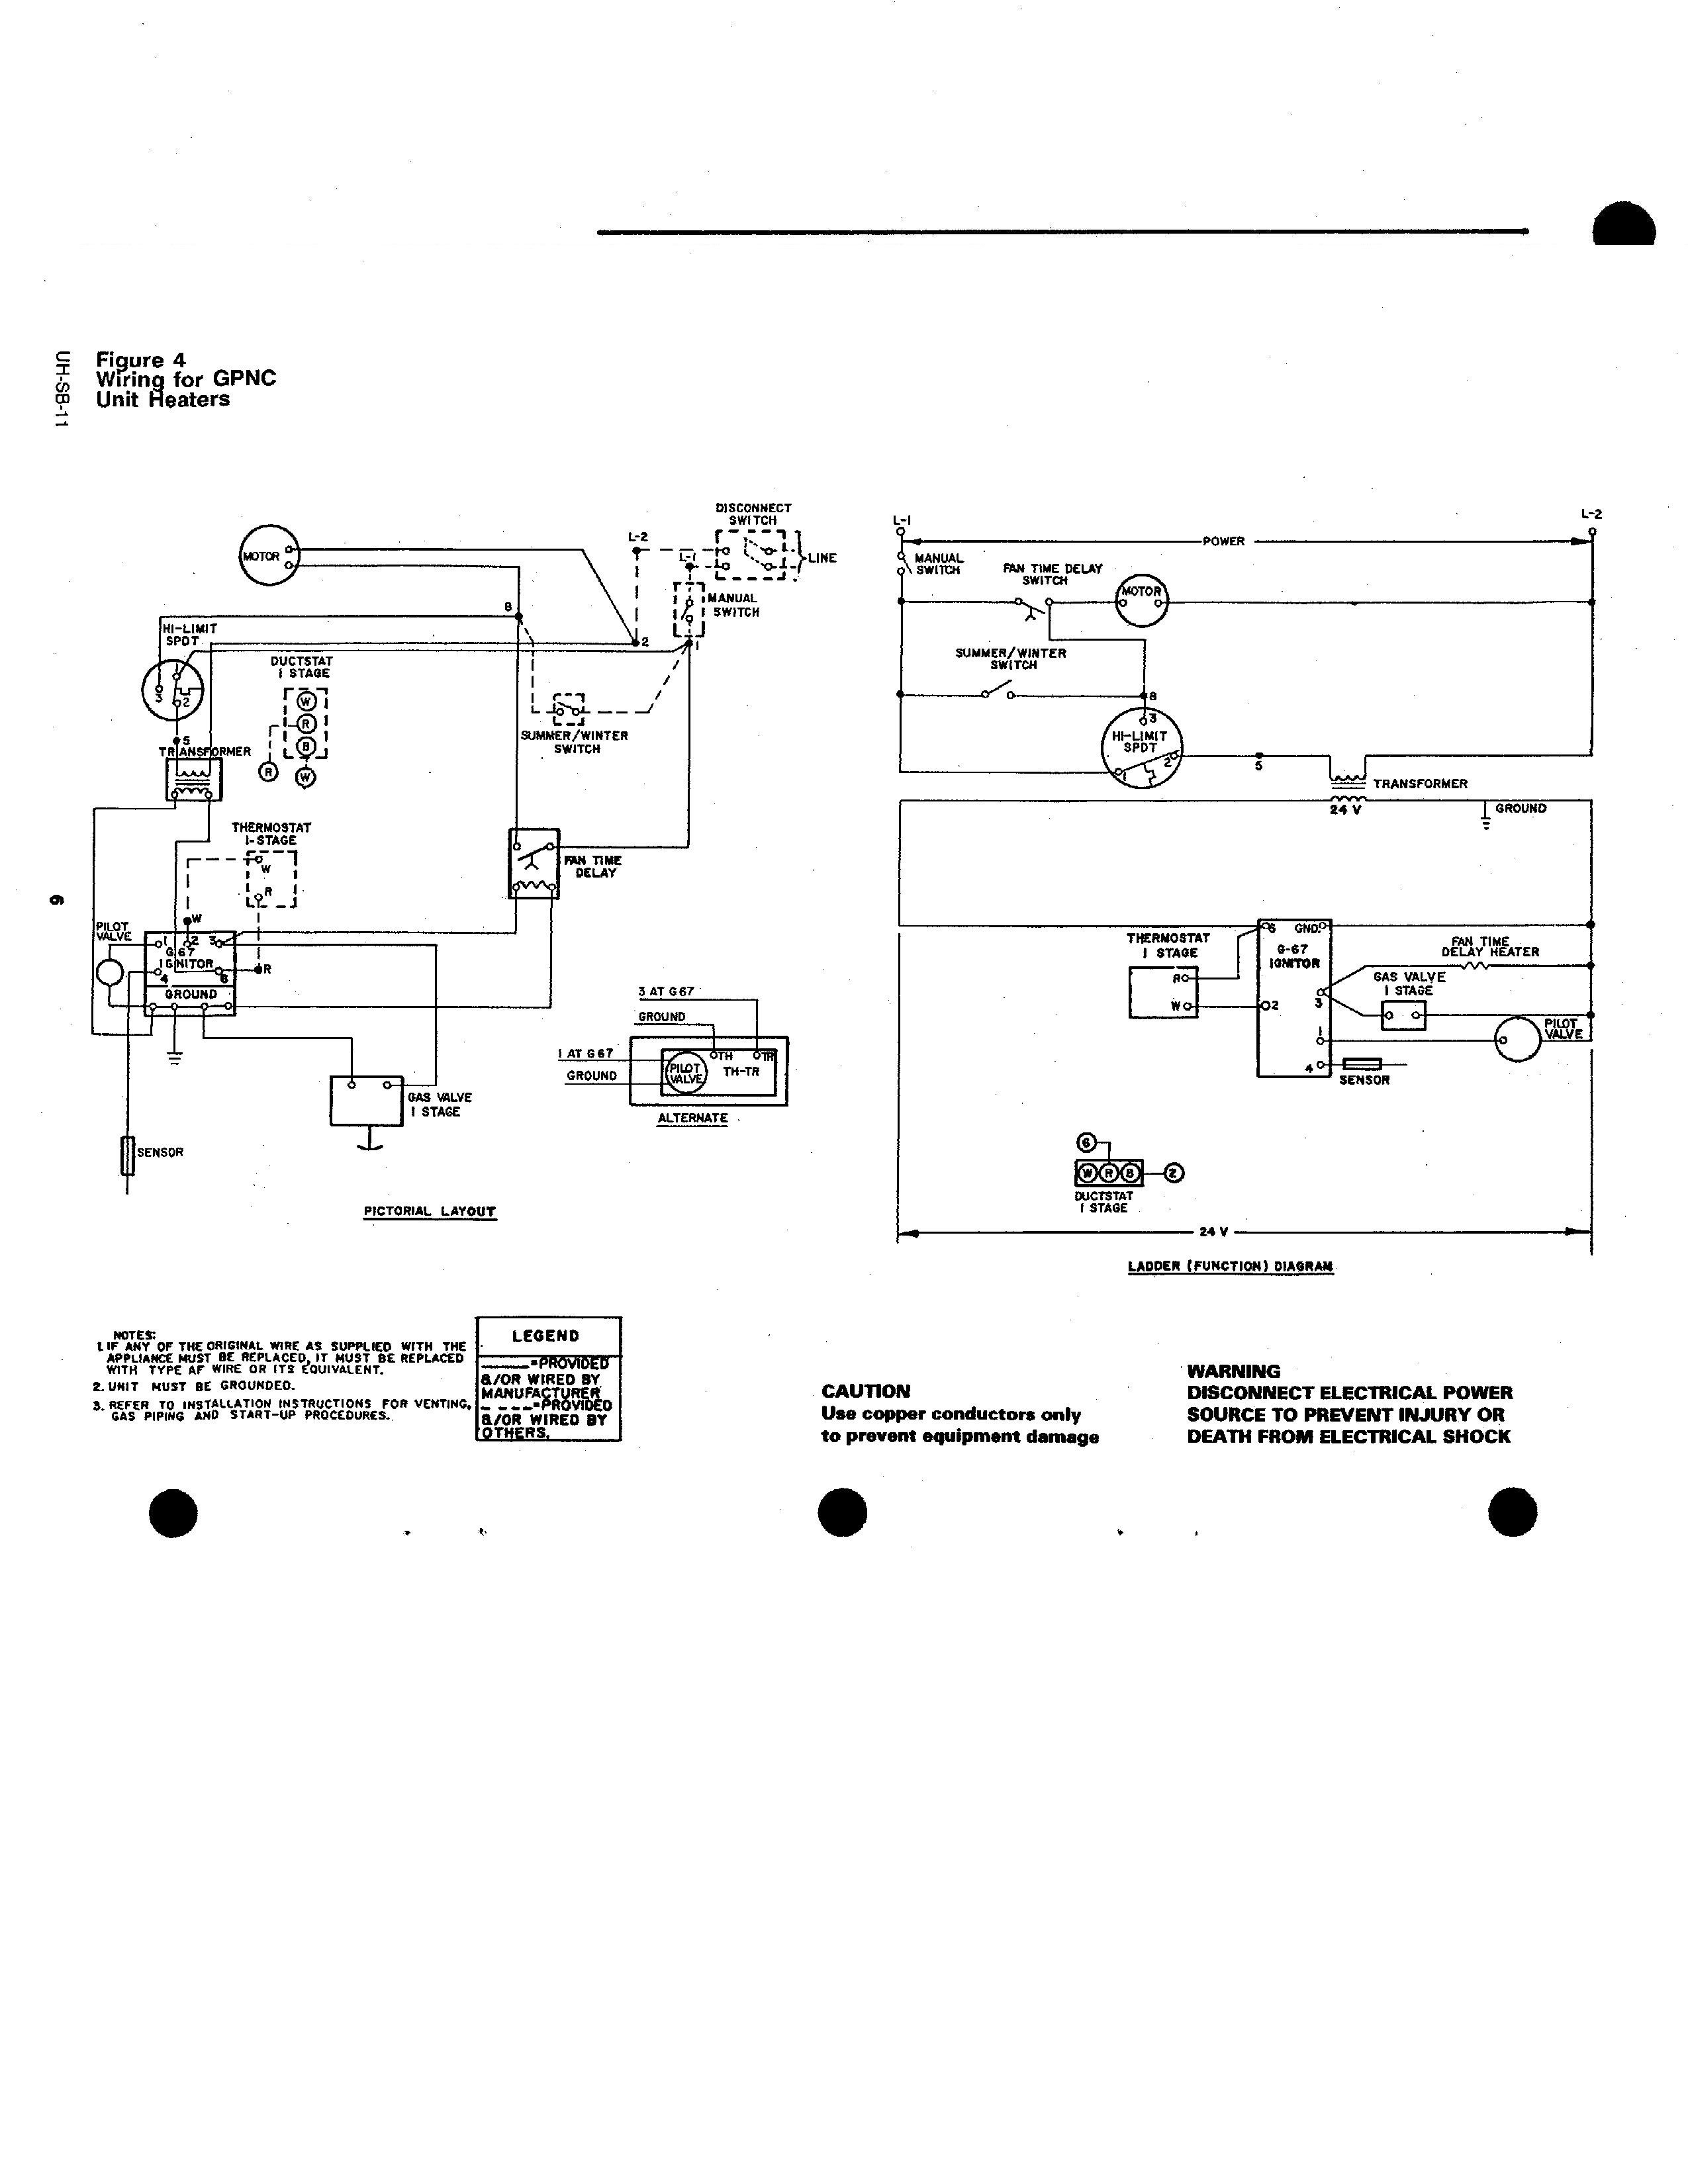 modine unit heater wiring diagram Download-Modine Wiring Diagram Copy Can You Send Me A For New 15-q